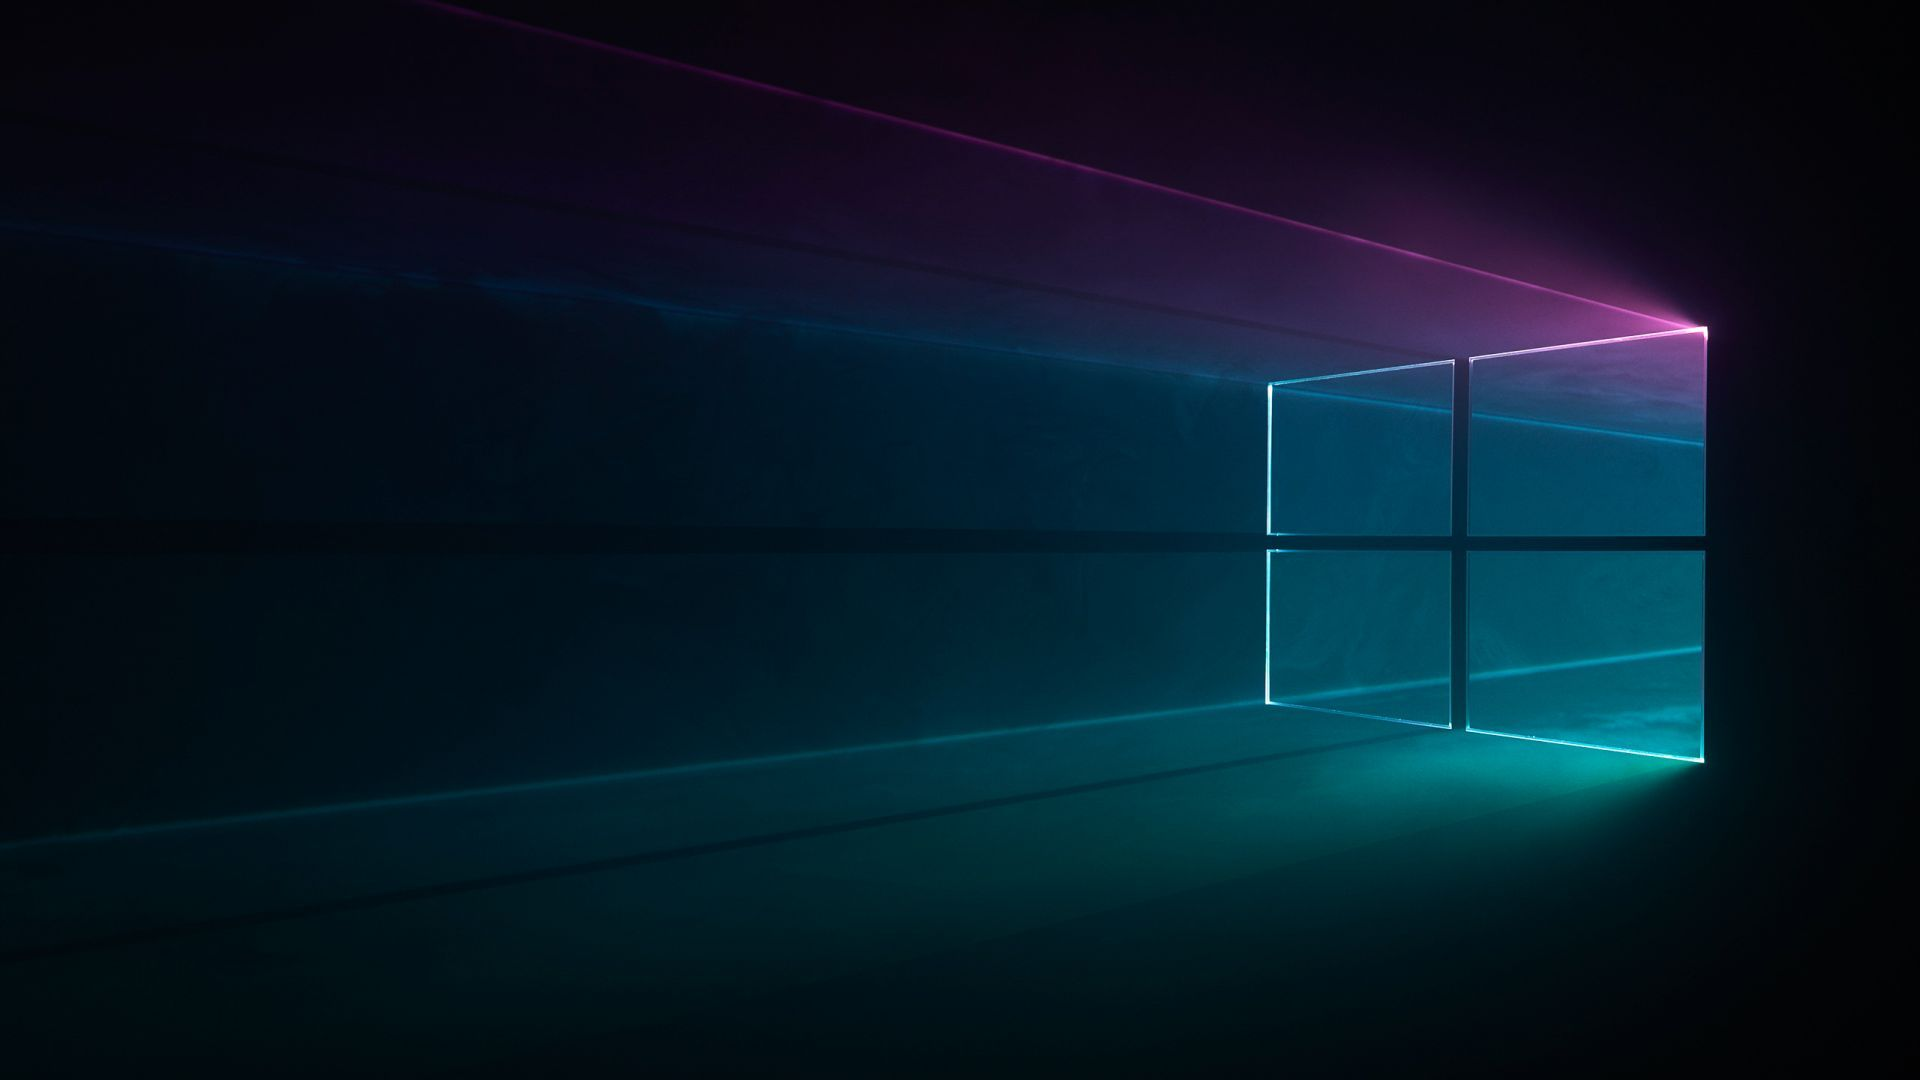 Download wallpapers of Windows 10, Windows logo, Multi